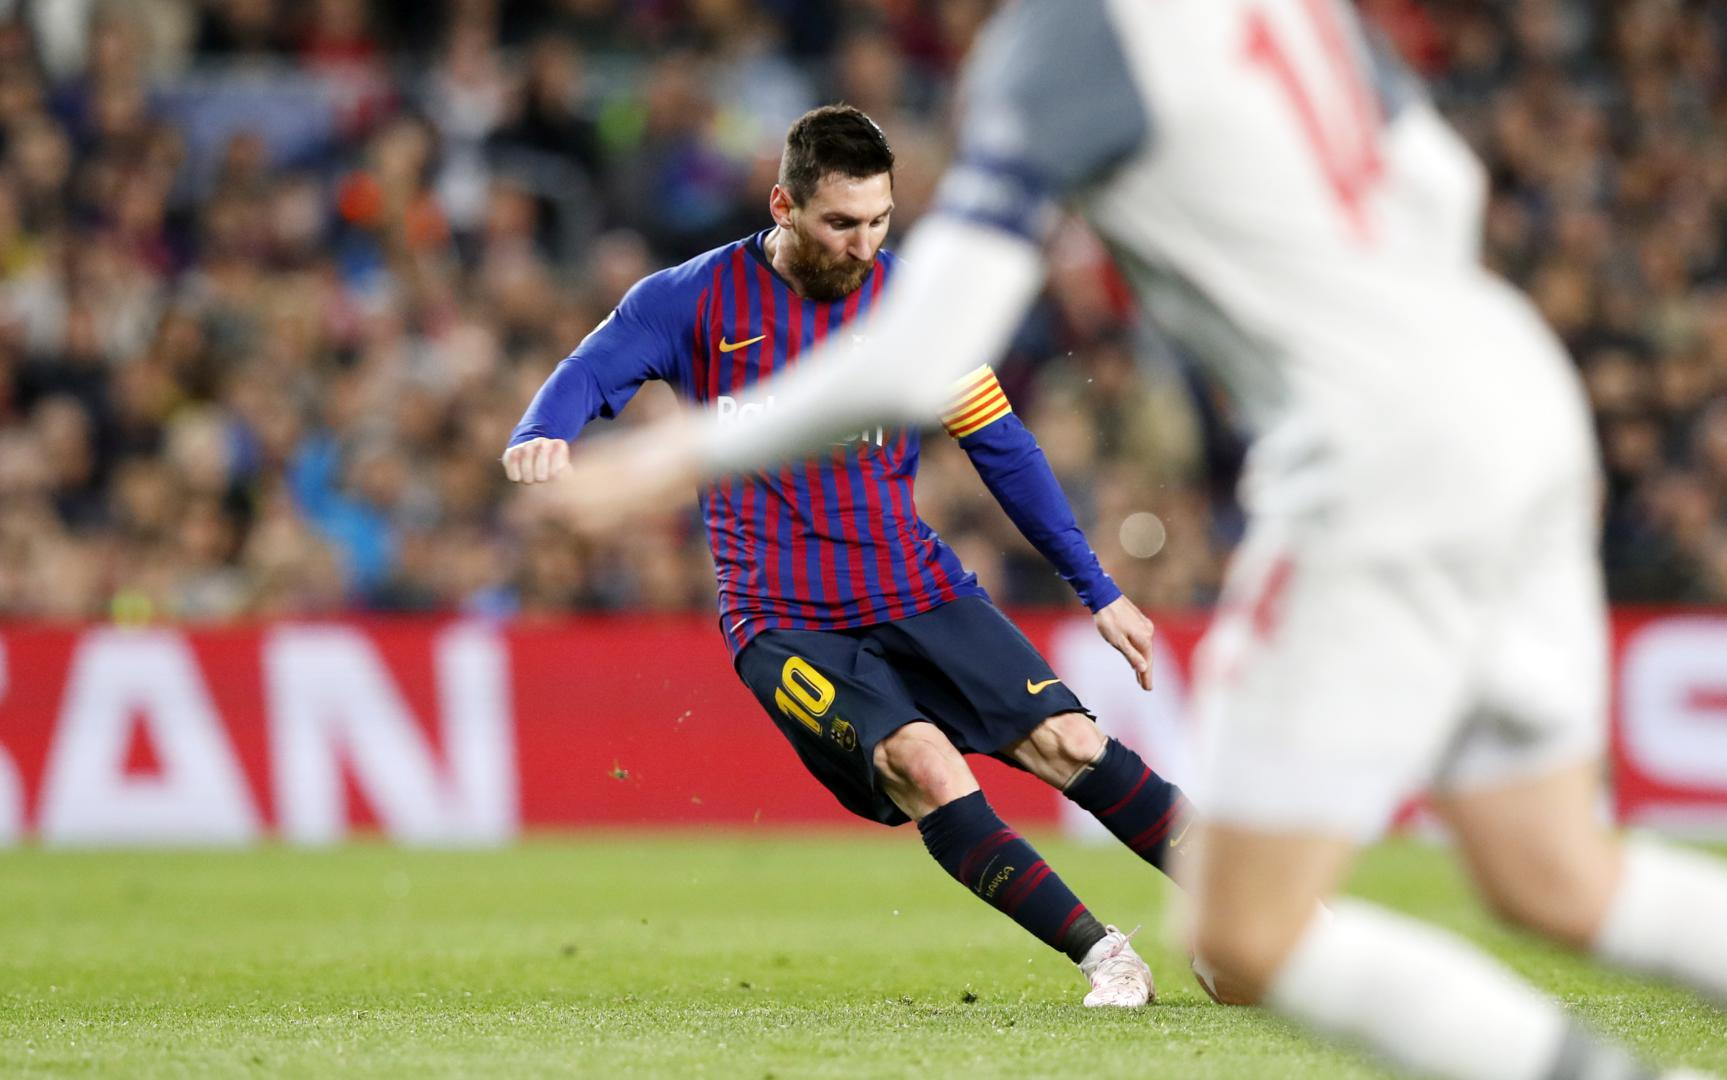 Messi's sublime free kick, from every angle